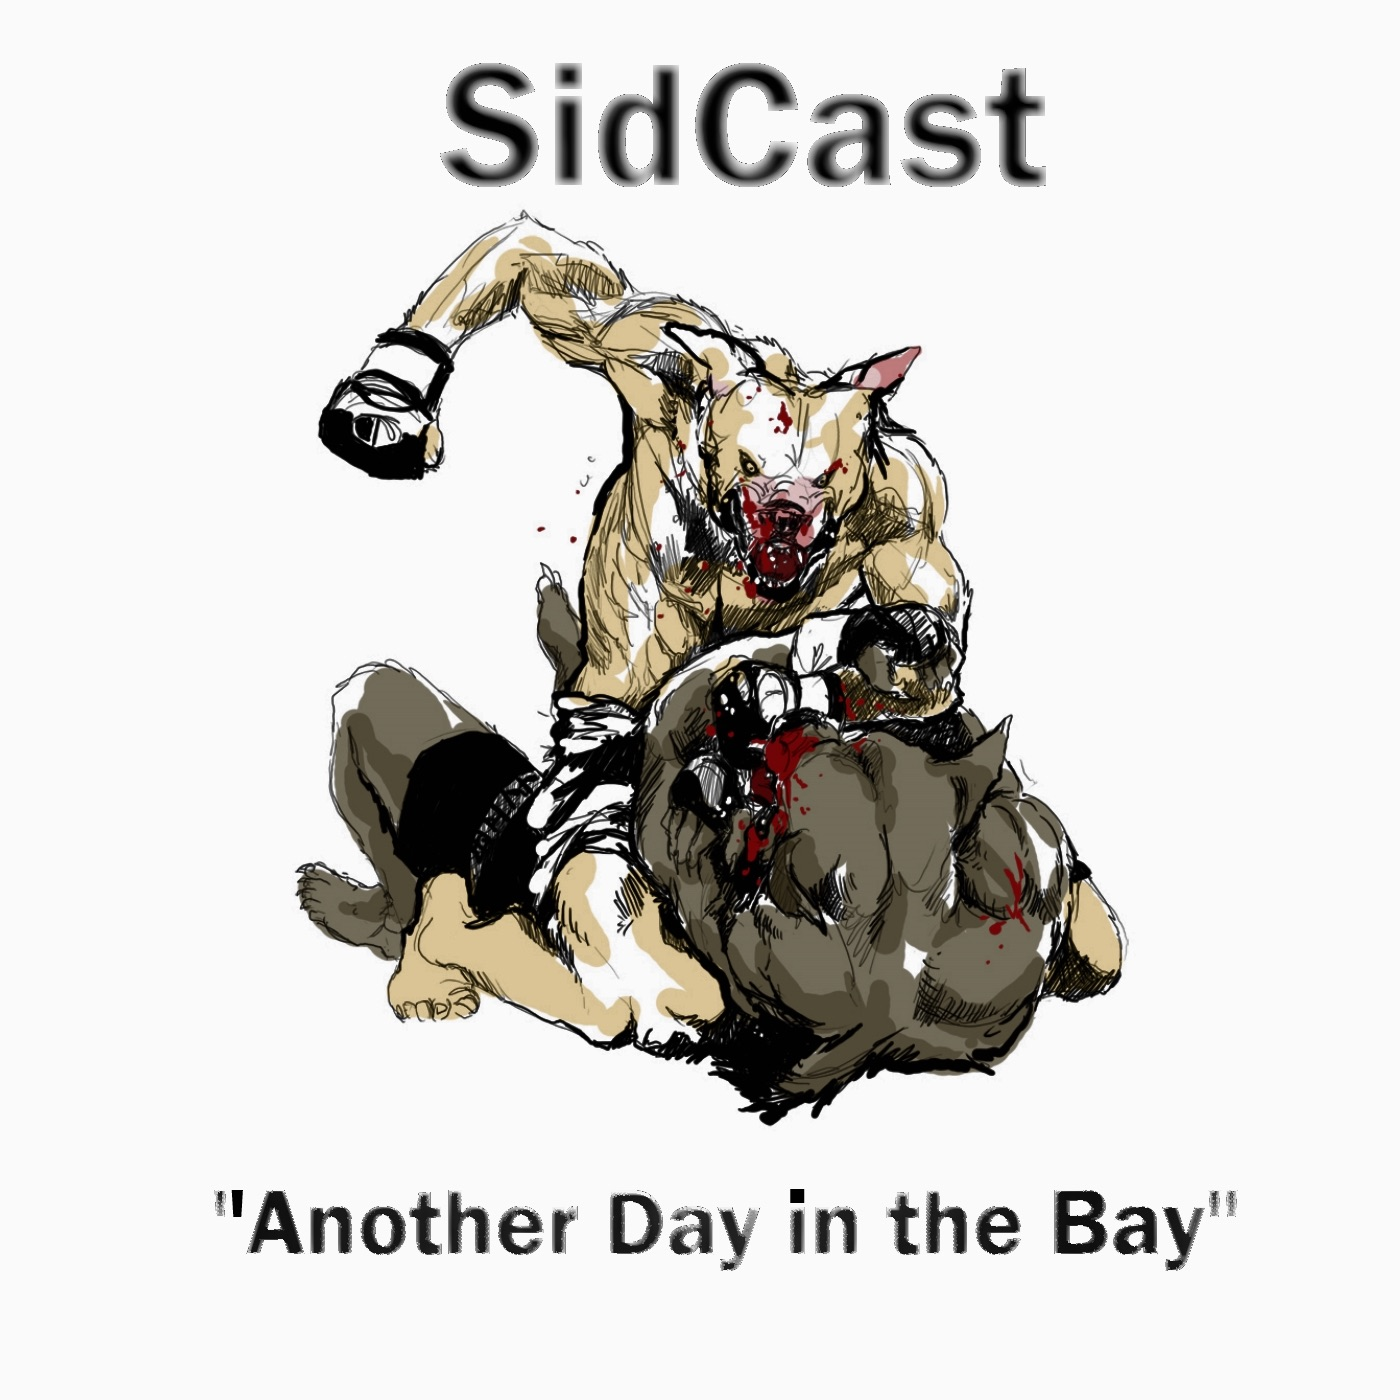 Sidcast